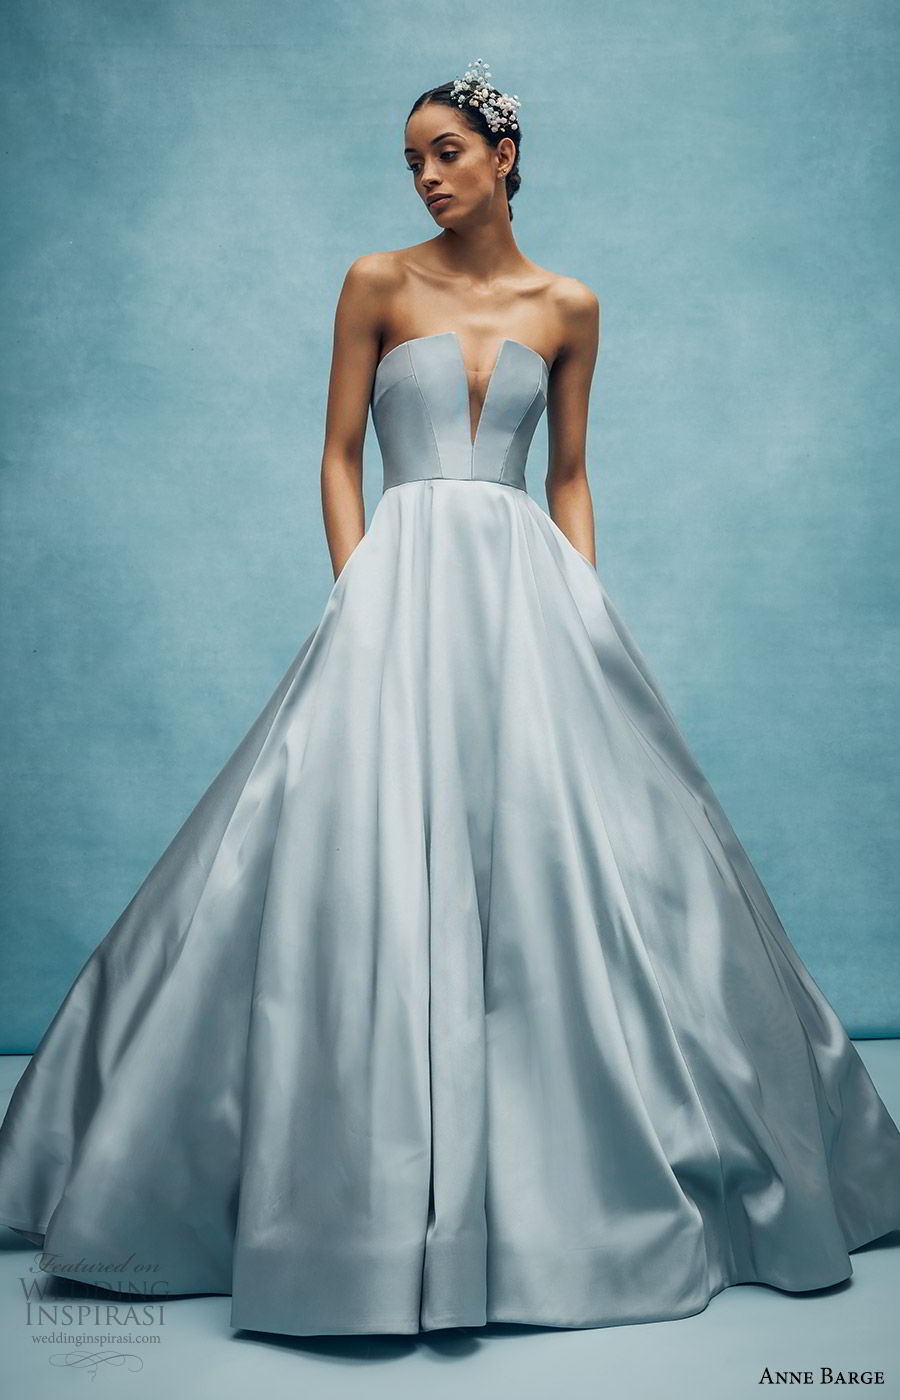 anne barge spring 2020 bridal strapless straight across split v neckline a line ball gown wedding dress (4) elegant minimal modern chapel train blue color mv